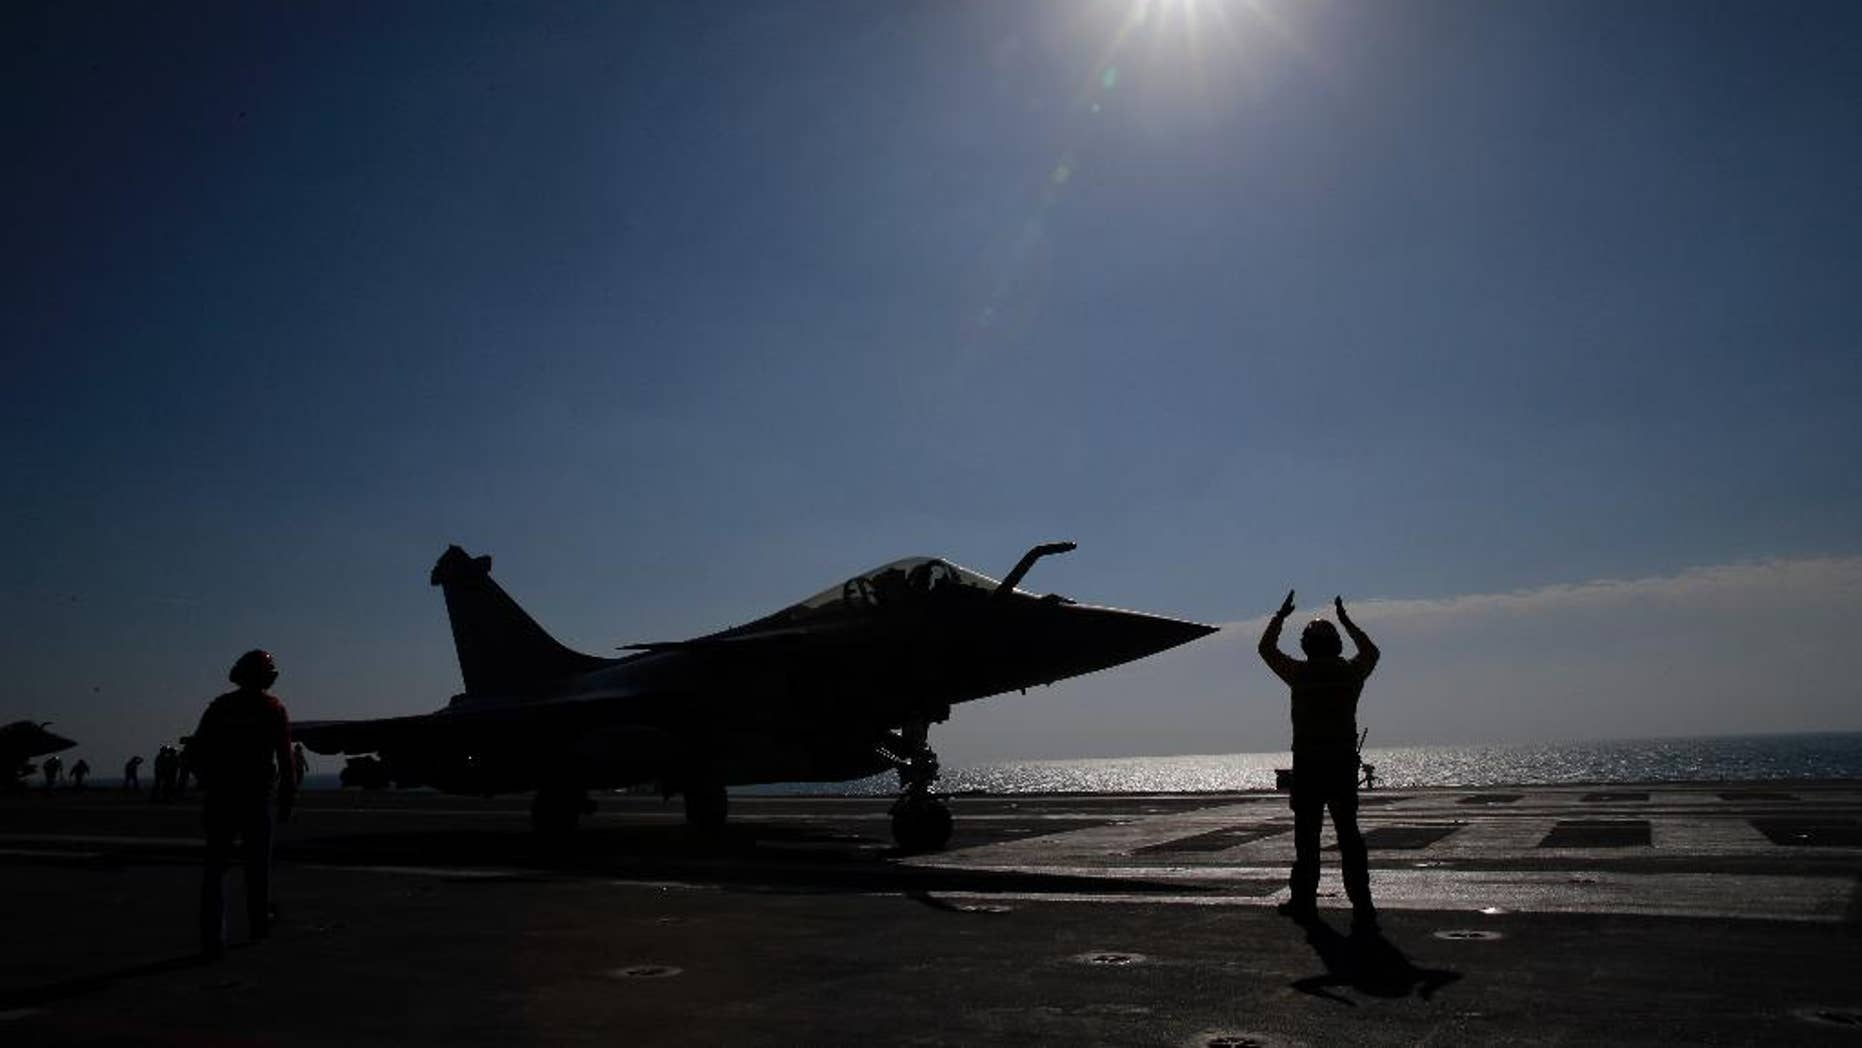 FILE - In this Jan.12, 2016 file photo, a Rafale jet fighter is catapulted on France's flagship Charles de Gaulle aircraft carrier in the Persian Gulf. French warplanes are flying over Iraq Friday Sept. 30, 2016 after France's Charles de Gaulle aircraft carrier rejoined the U.S.-led fight against Islamic State extremists and the coalition prepares to try to take back the city of Mosul. (AP Photo/Christophe Ena, File)